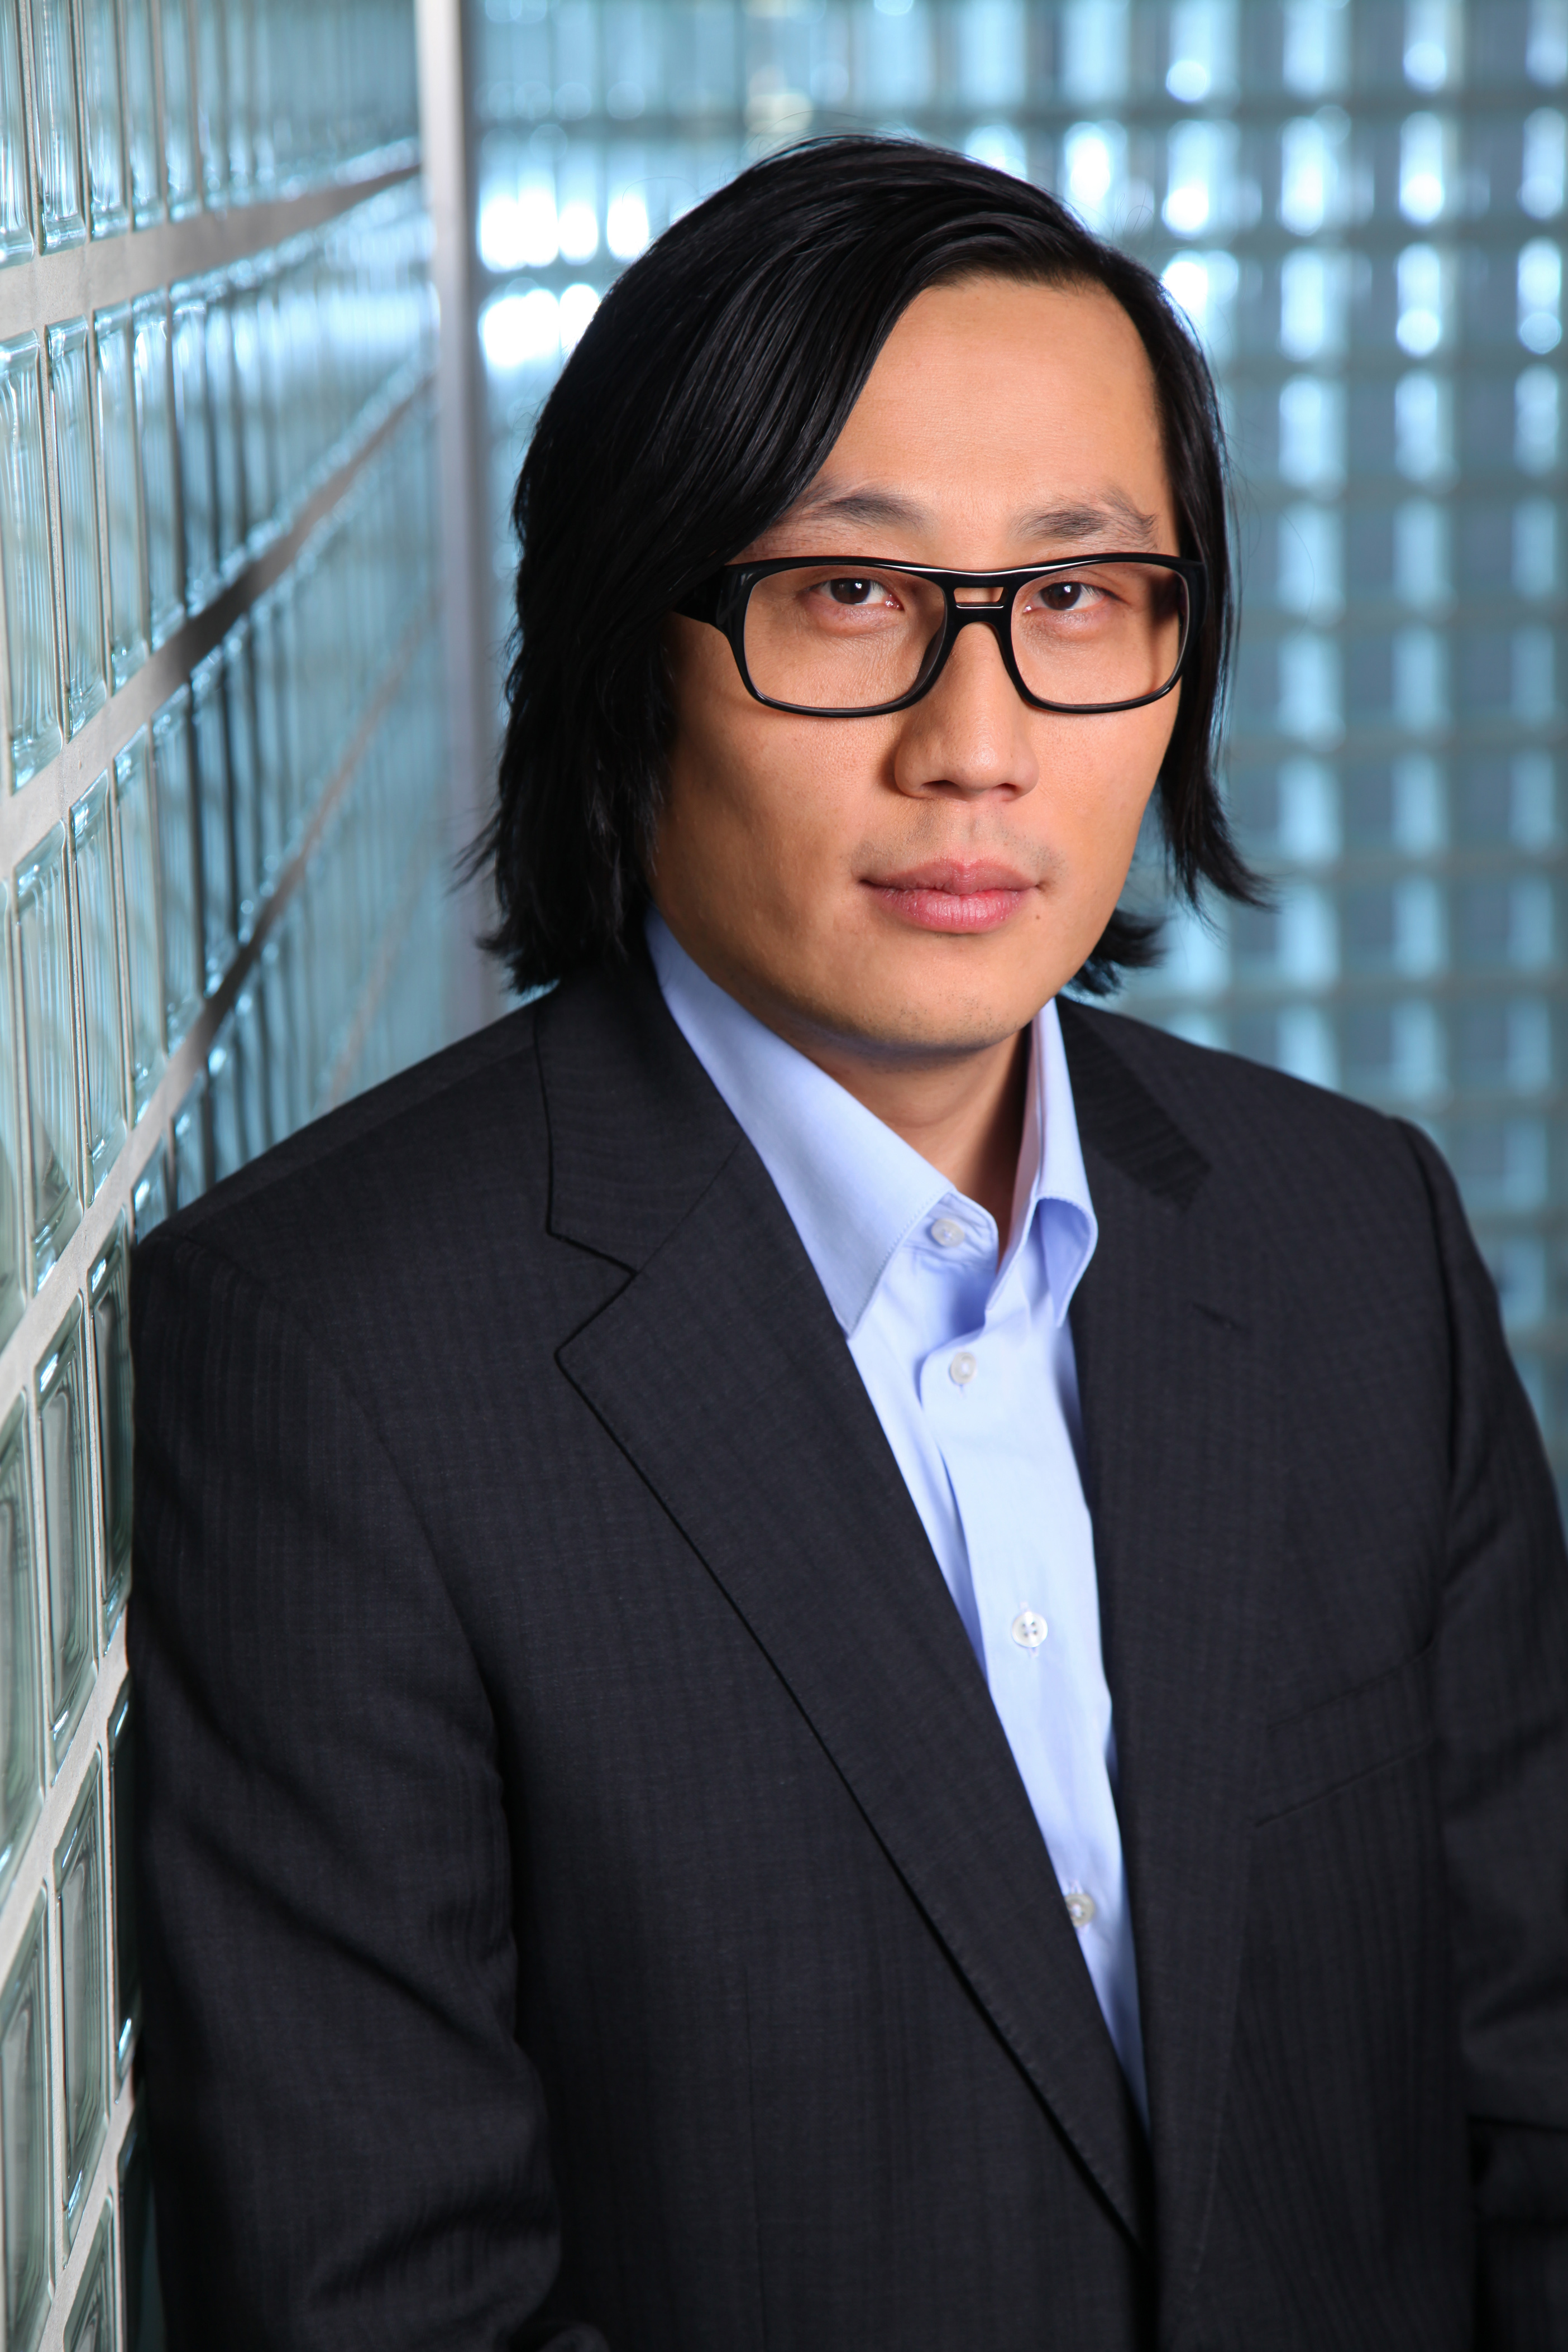 Jin Choi ist neuer Country Manager von MTV Networks Germany